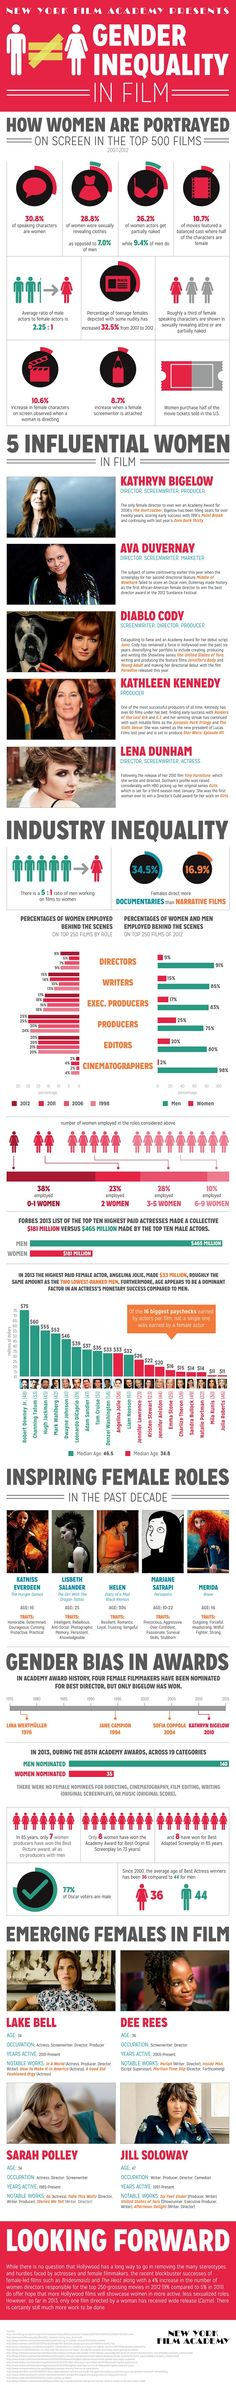 How Have Women Fared in Film Over the Last Five Years? (GRAPHS)